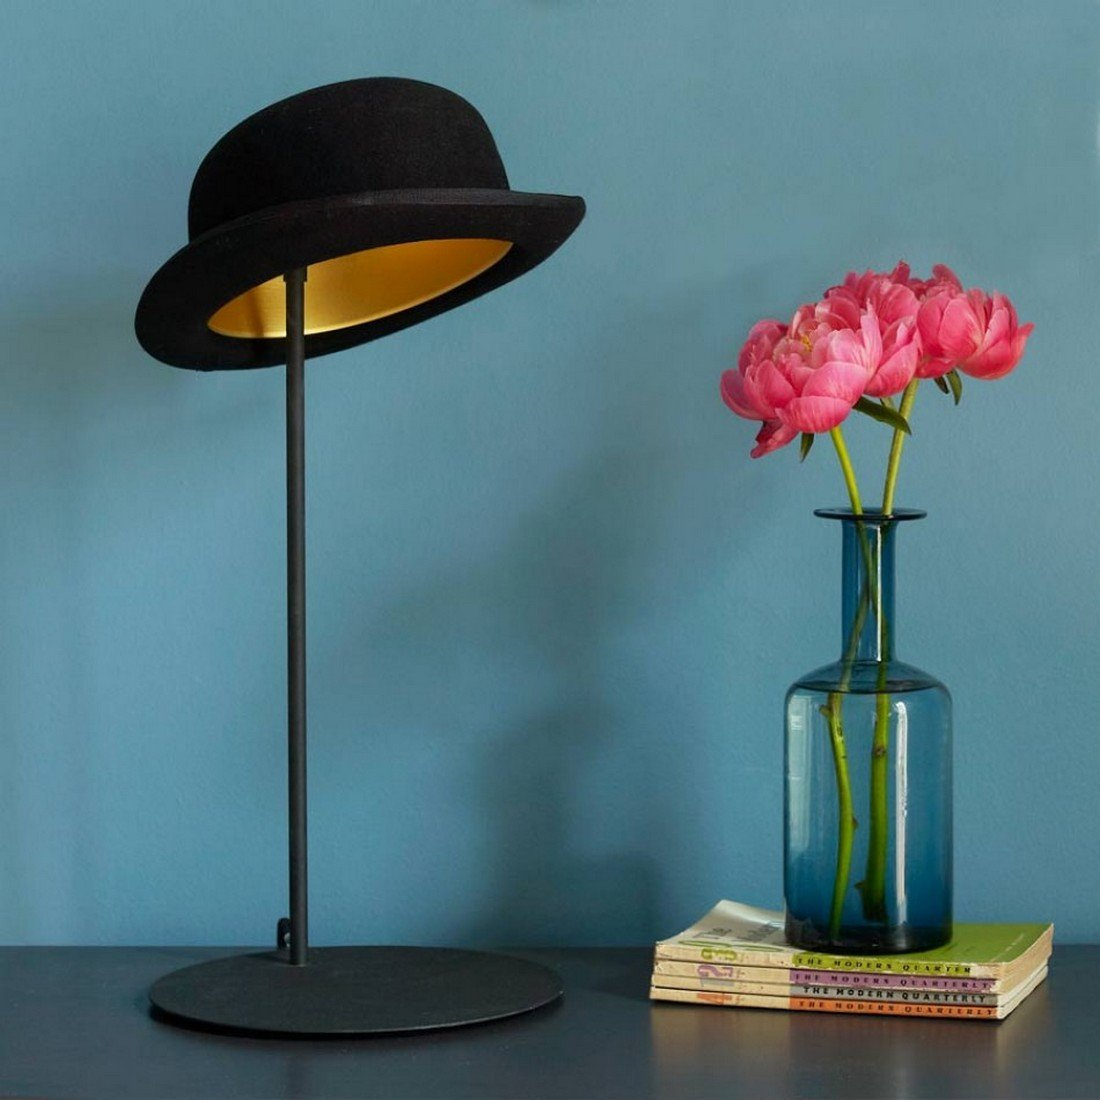 08_Jeeves_Bowler_Hat_Table_Lamp